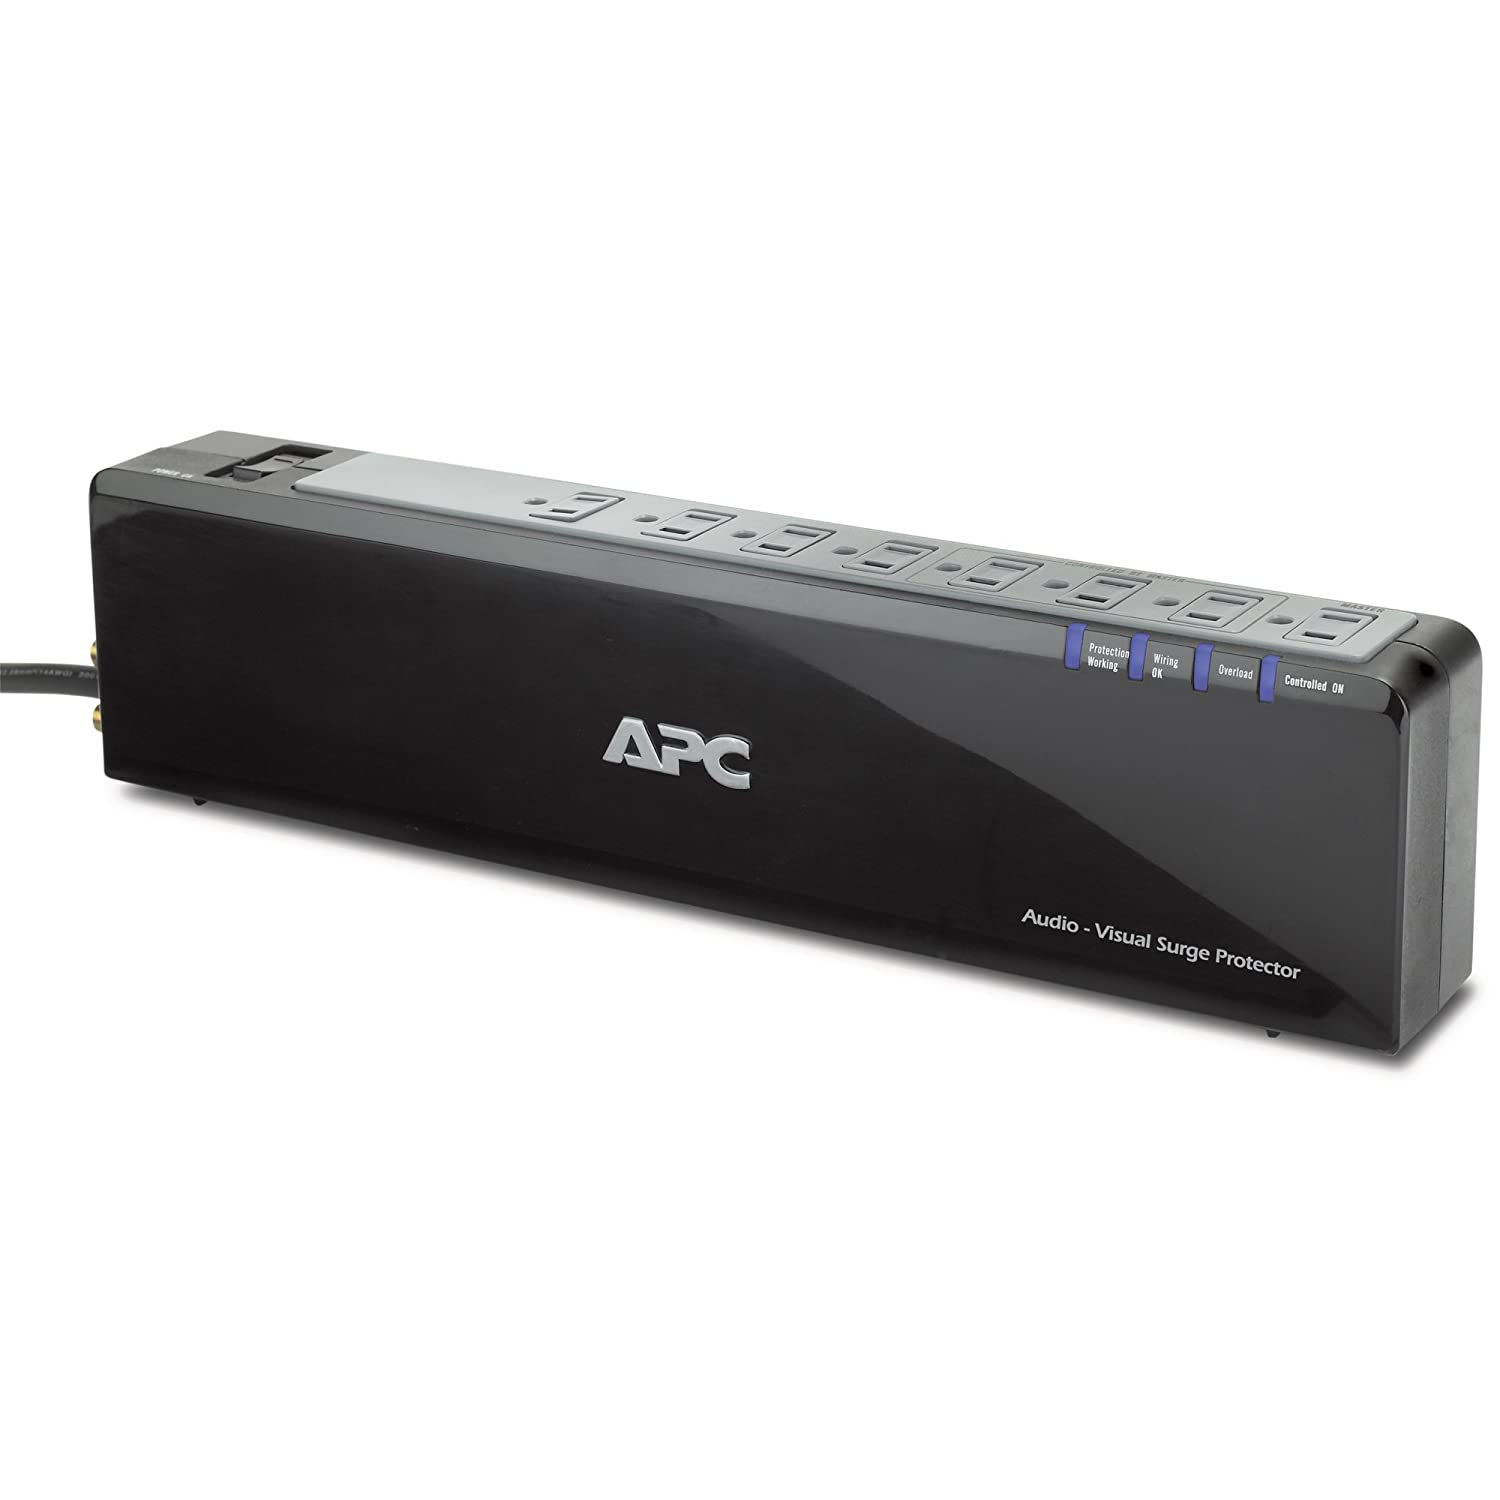 APC Premium Audio-Video Surge Protector with 8 Outlets and Coaxial Protection, 120V (P8V)